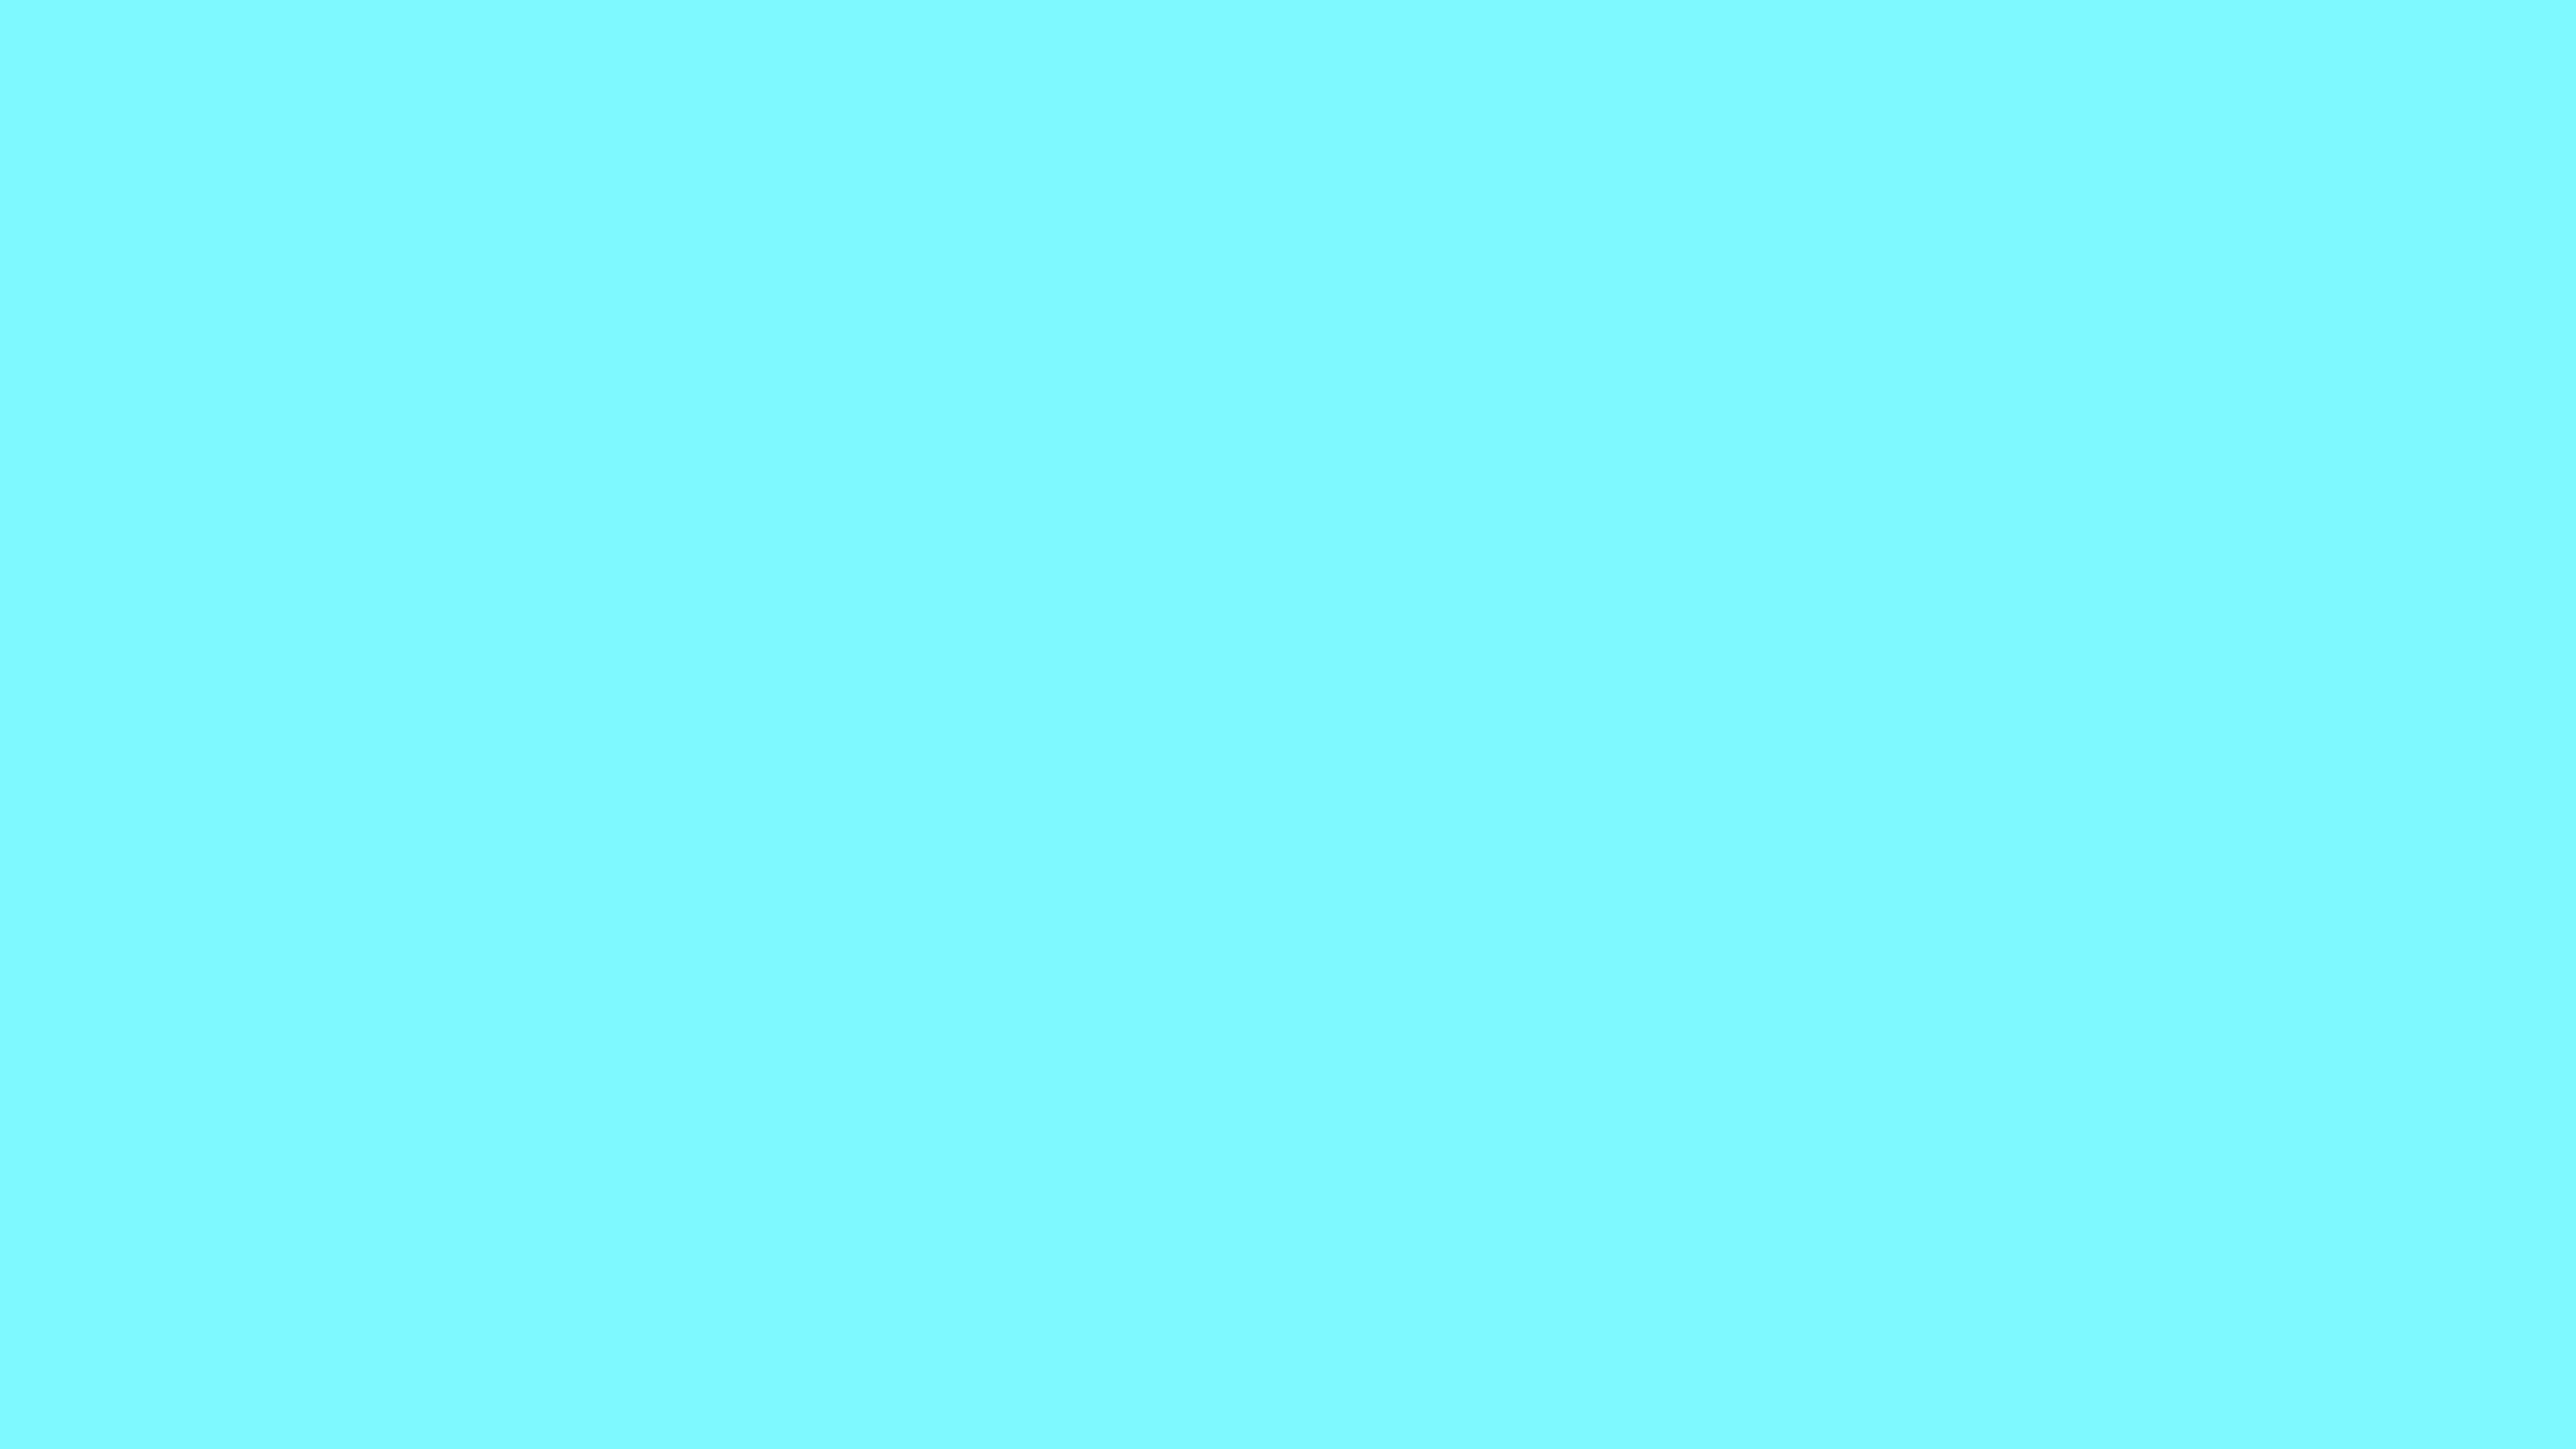 3840x2160 Electric Blue Solid Color Background